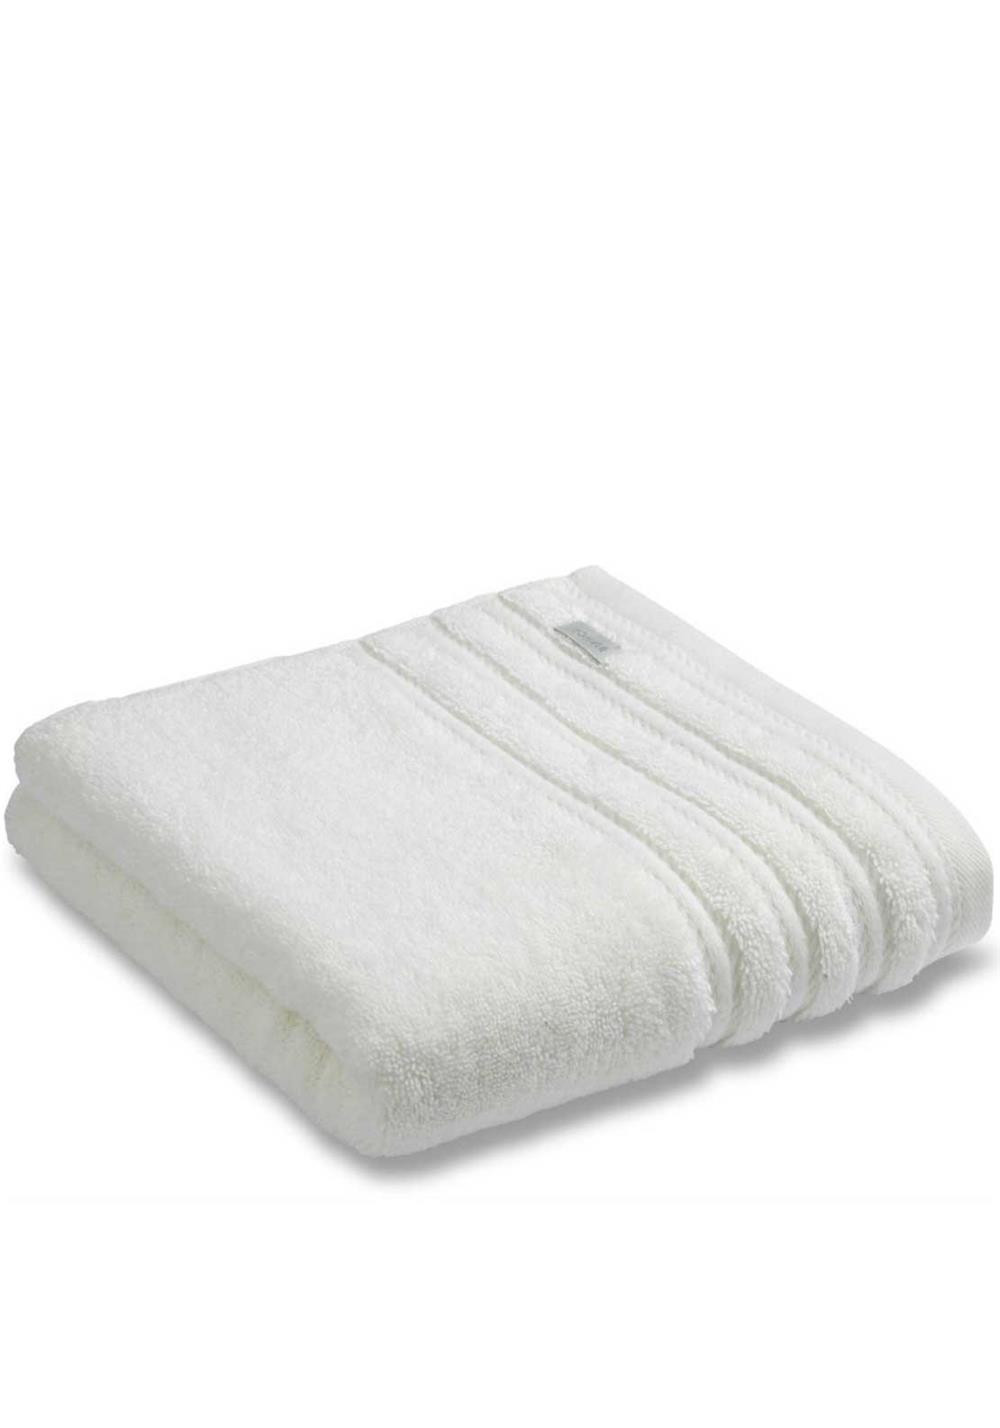 Bianca Combed Cotton Towel, Cream